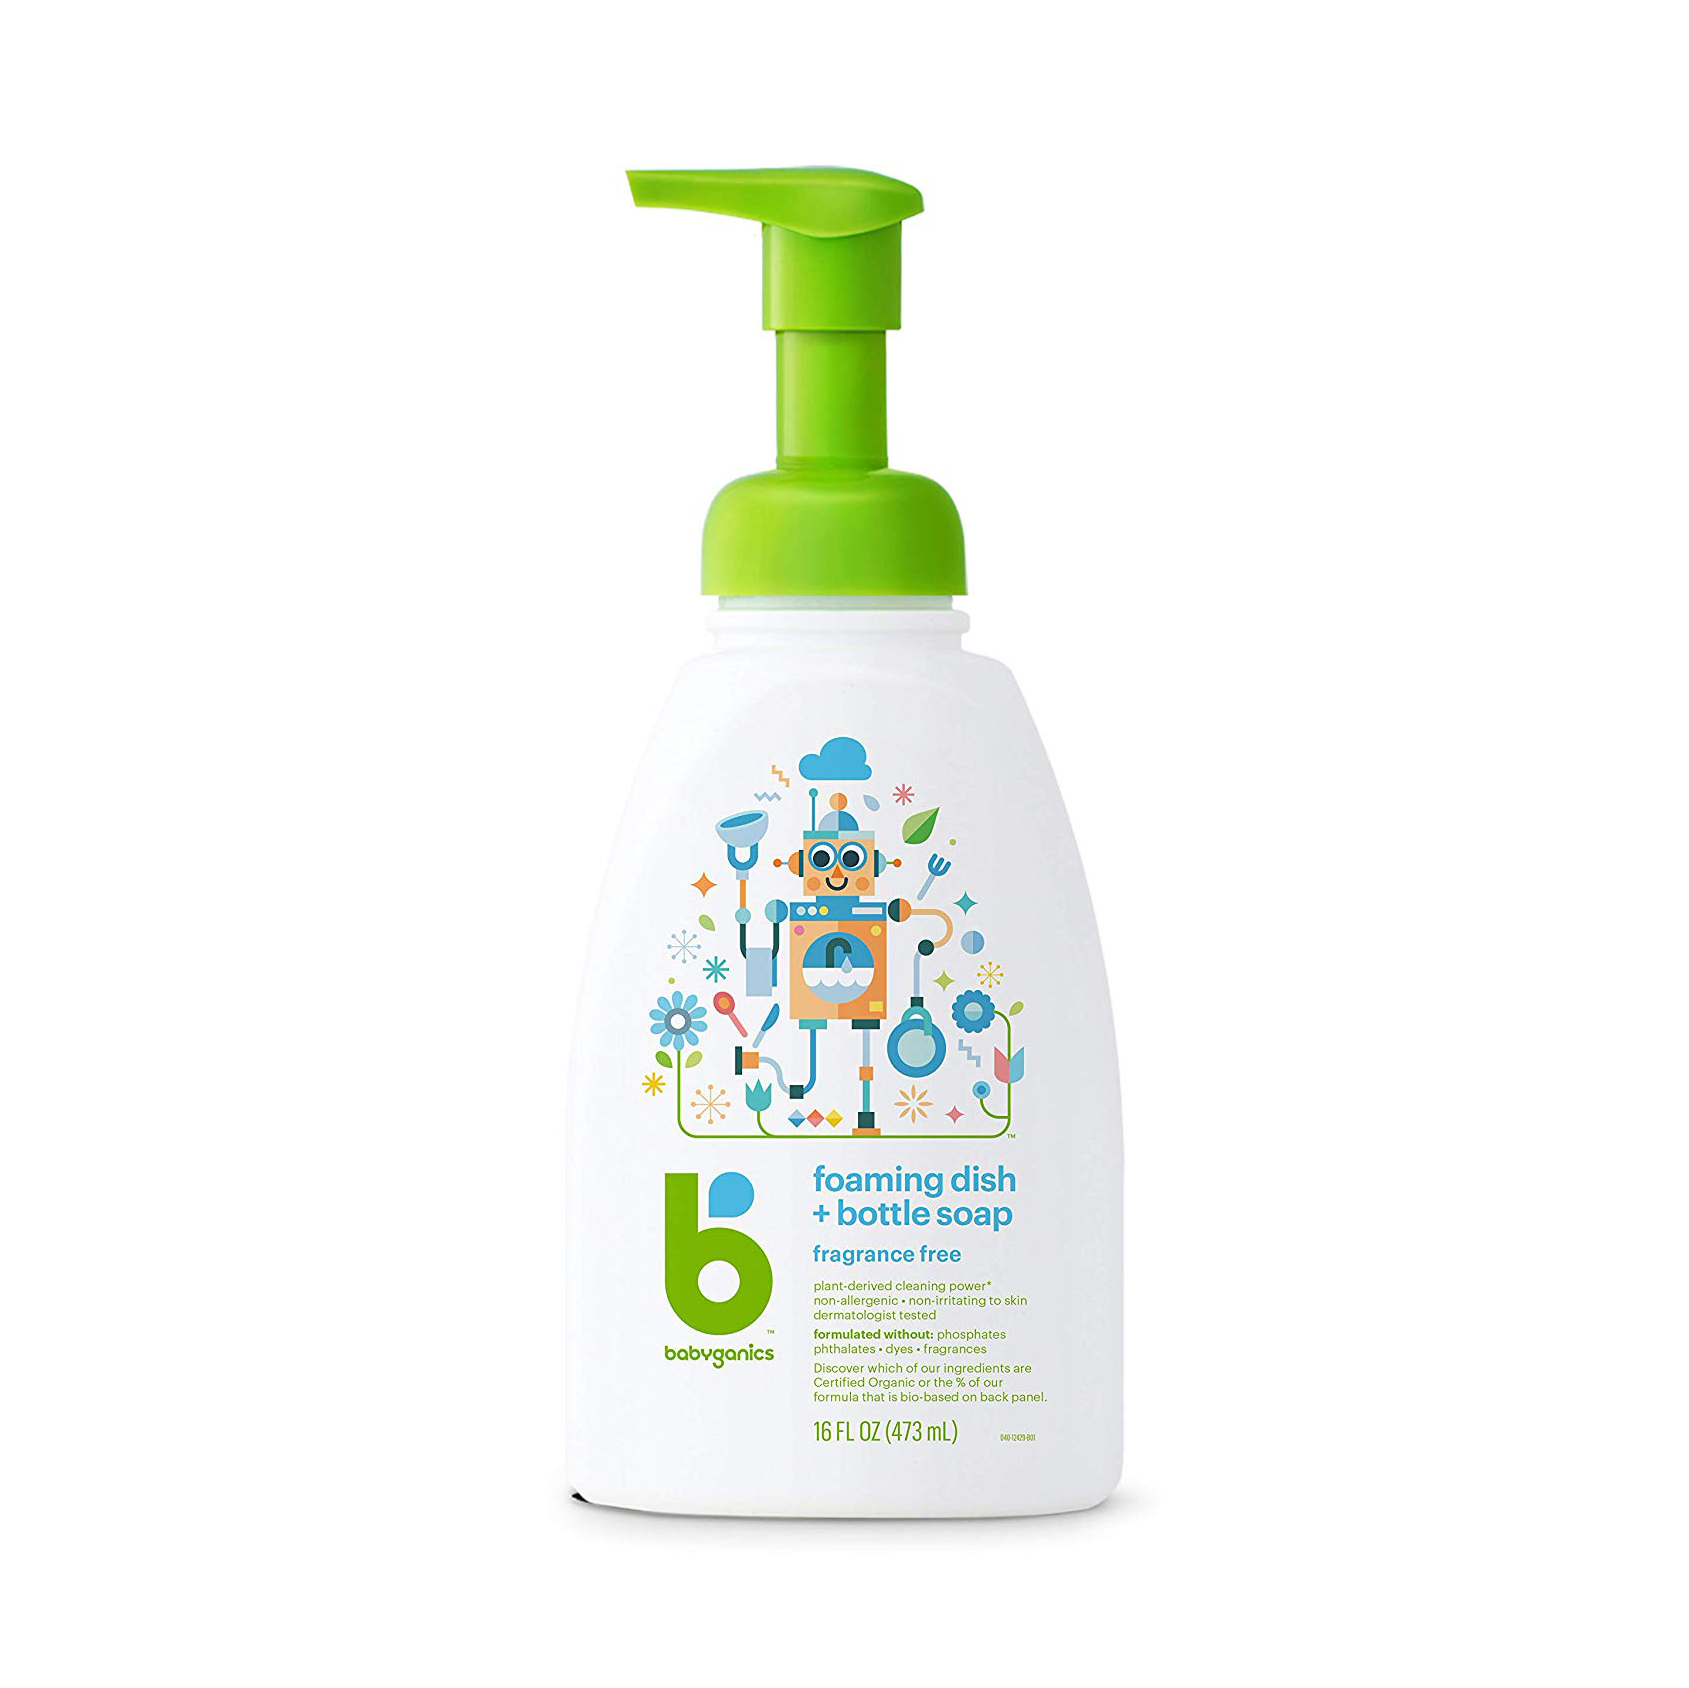 Babyganics Foaming Dish + Bottle Soap